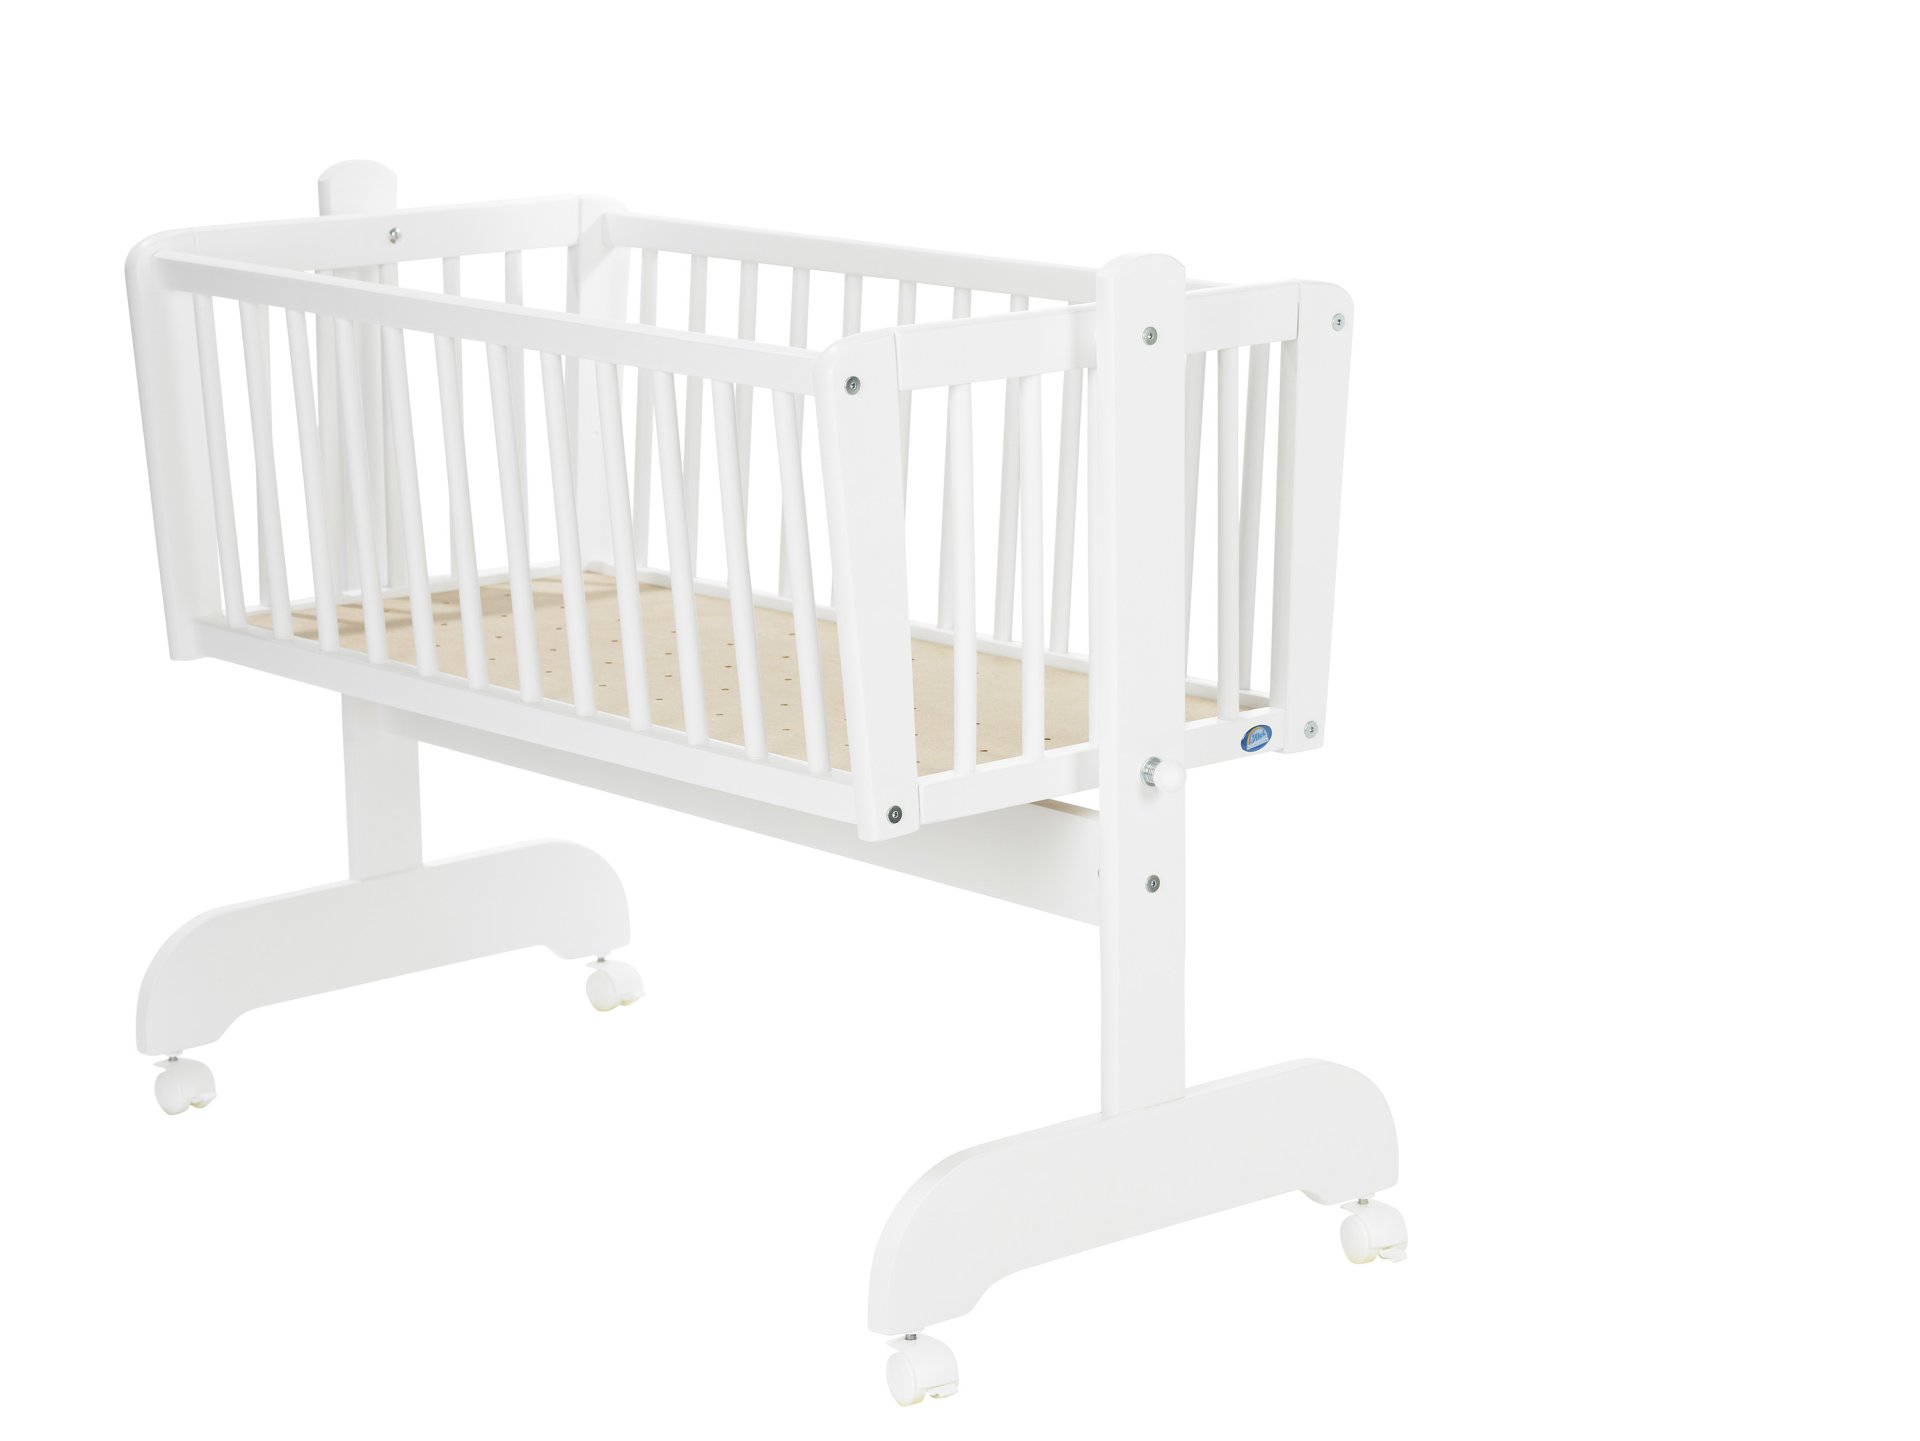 c733d2c5b031e9 Baby Wiege. Baby Wiege Weiss With Baby Wiege. Cheap Babywiege With ...